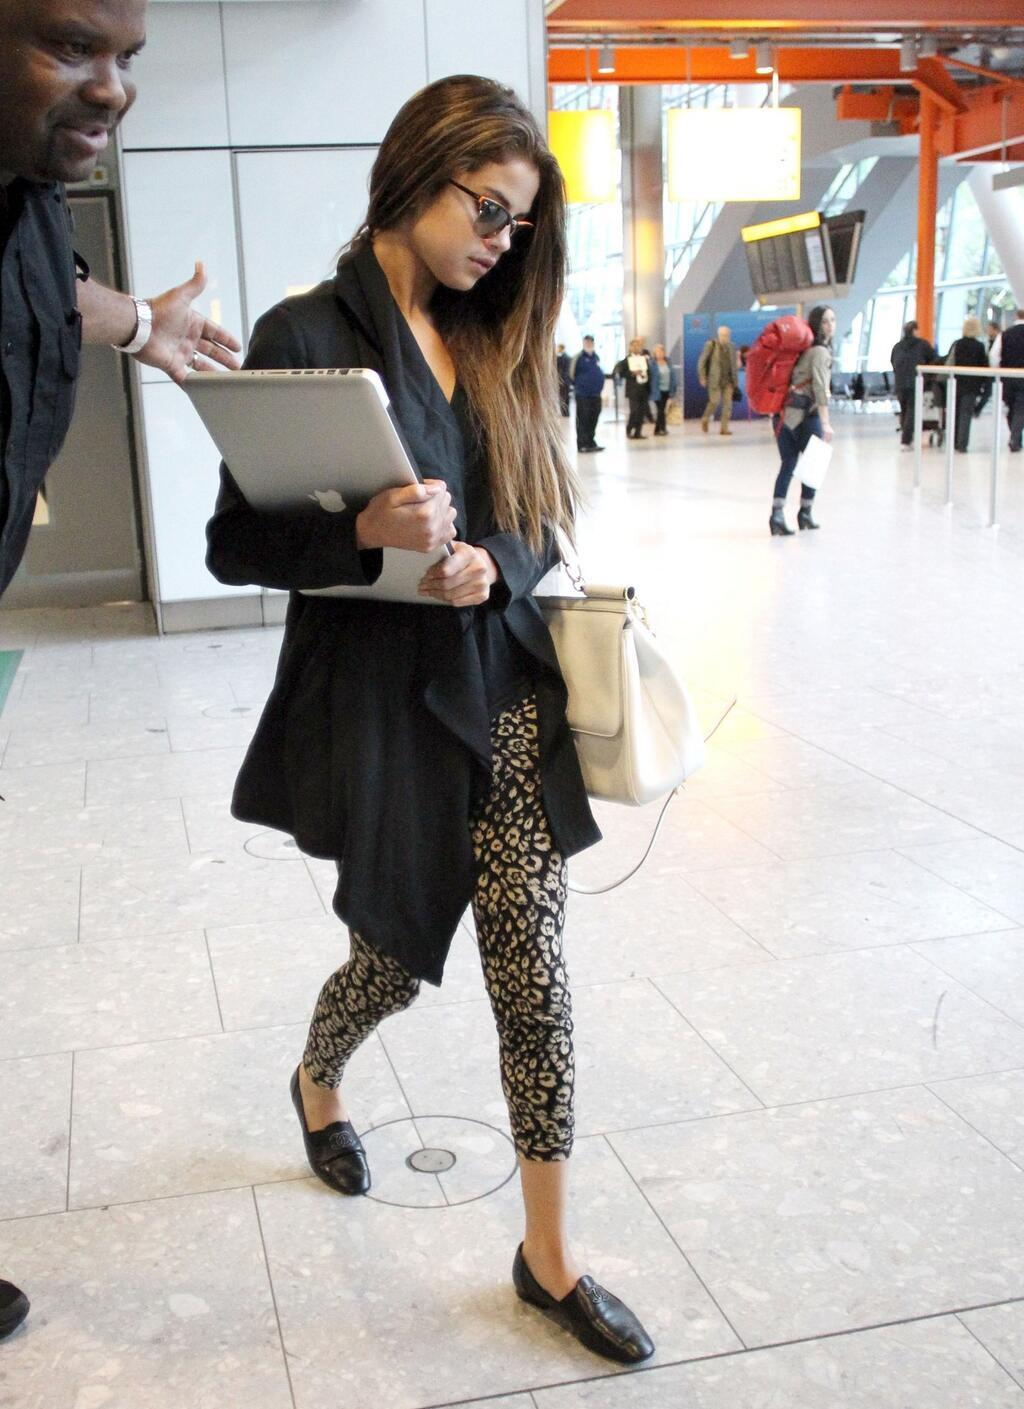 flyonvogue:  unreliably:  selgomez-news:  Selena arriving in London earlier today (May 21st)  love her clothes  ♡ follow me on instagram: omgiremx